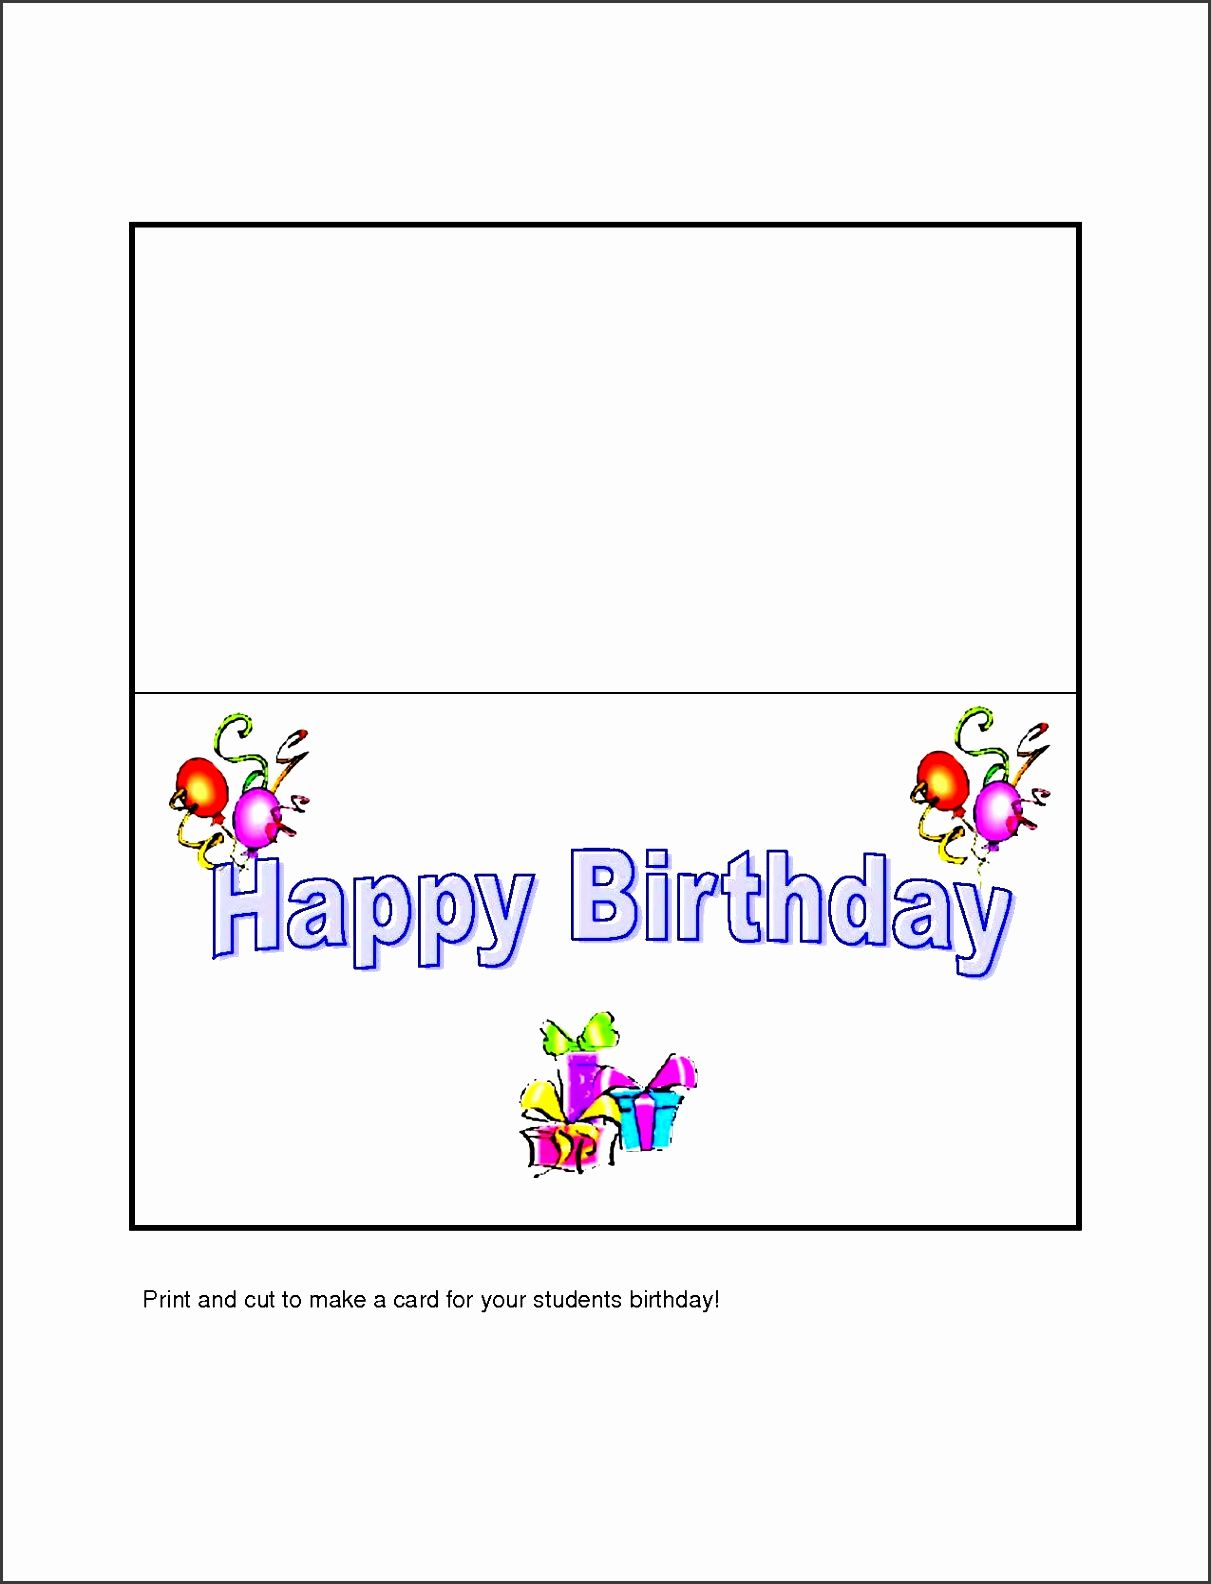 Beautiful 10 Free Microsoft Word Greeting Card Templates For Microsoft Word Birthday Ca Greeting Card Template Happy Birthday Cards Birthday Card Template Free